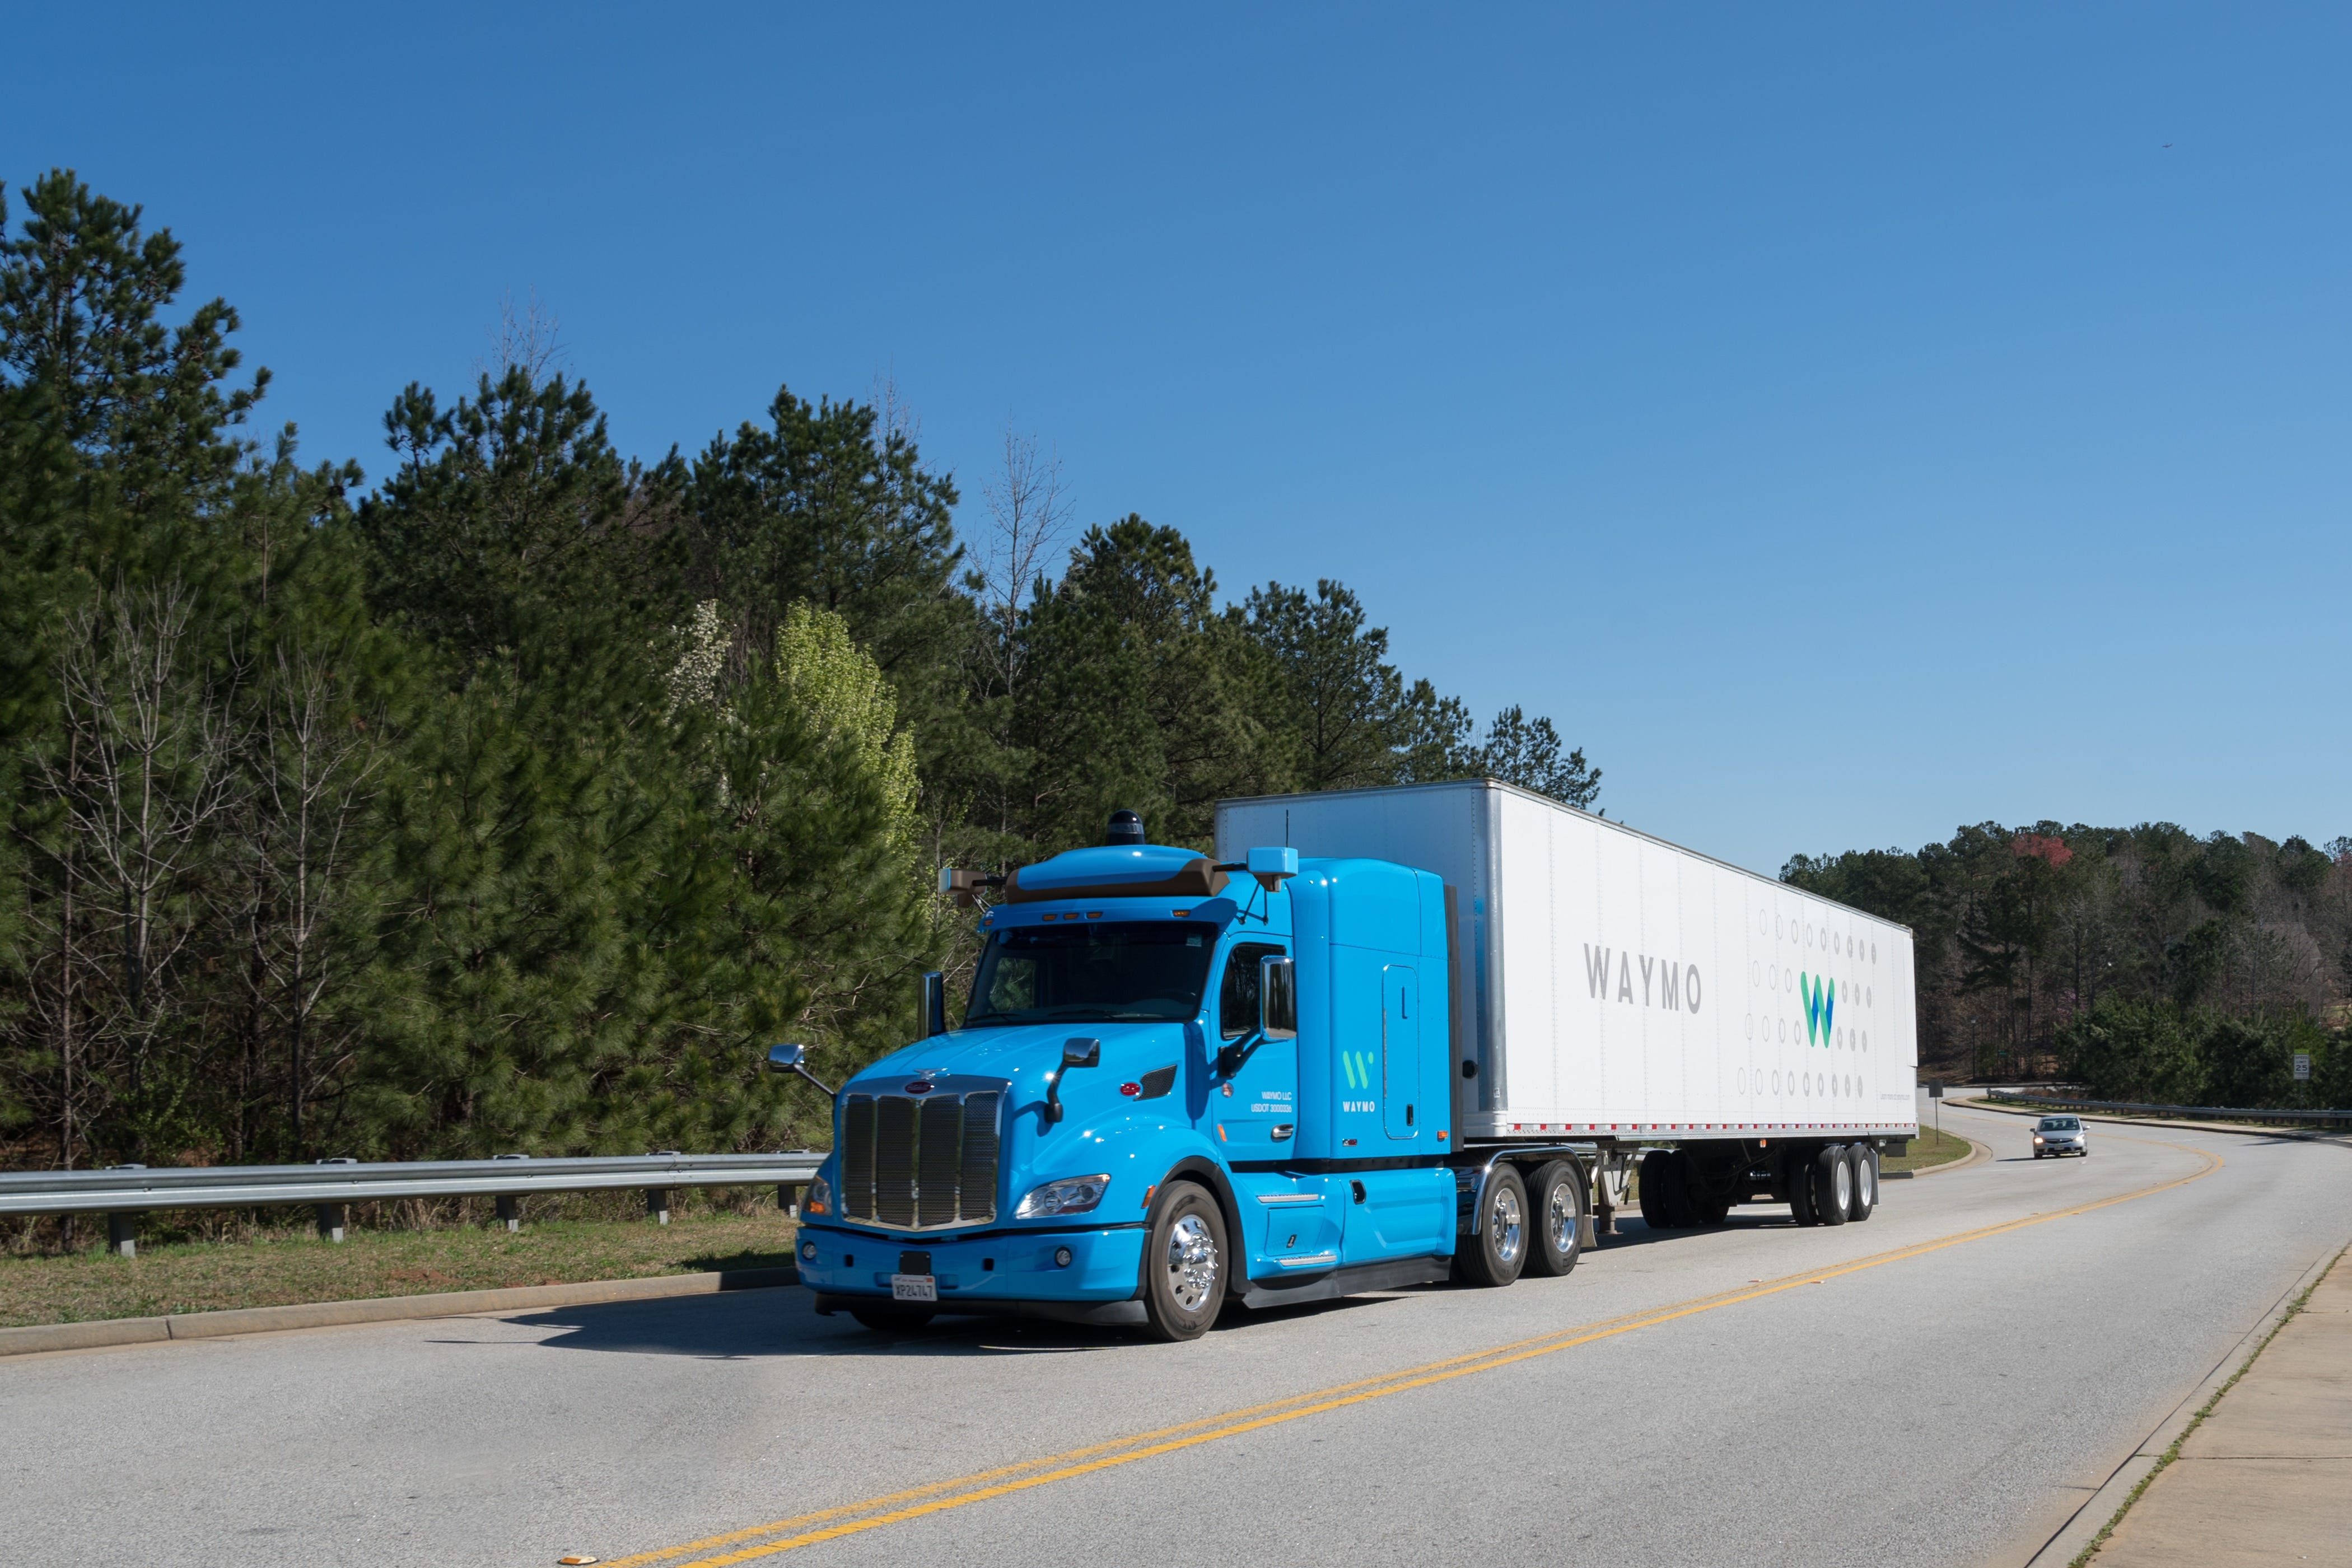 Self-driving big-rig trucks coming soon? Waymo set to begin mapping interstates in Texas, New Mexico